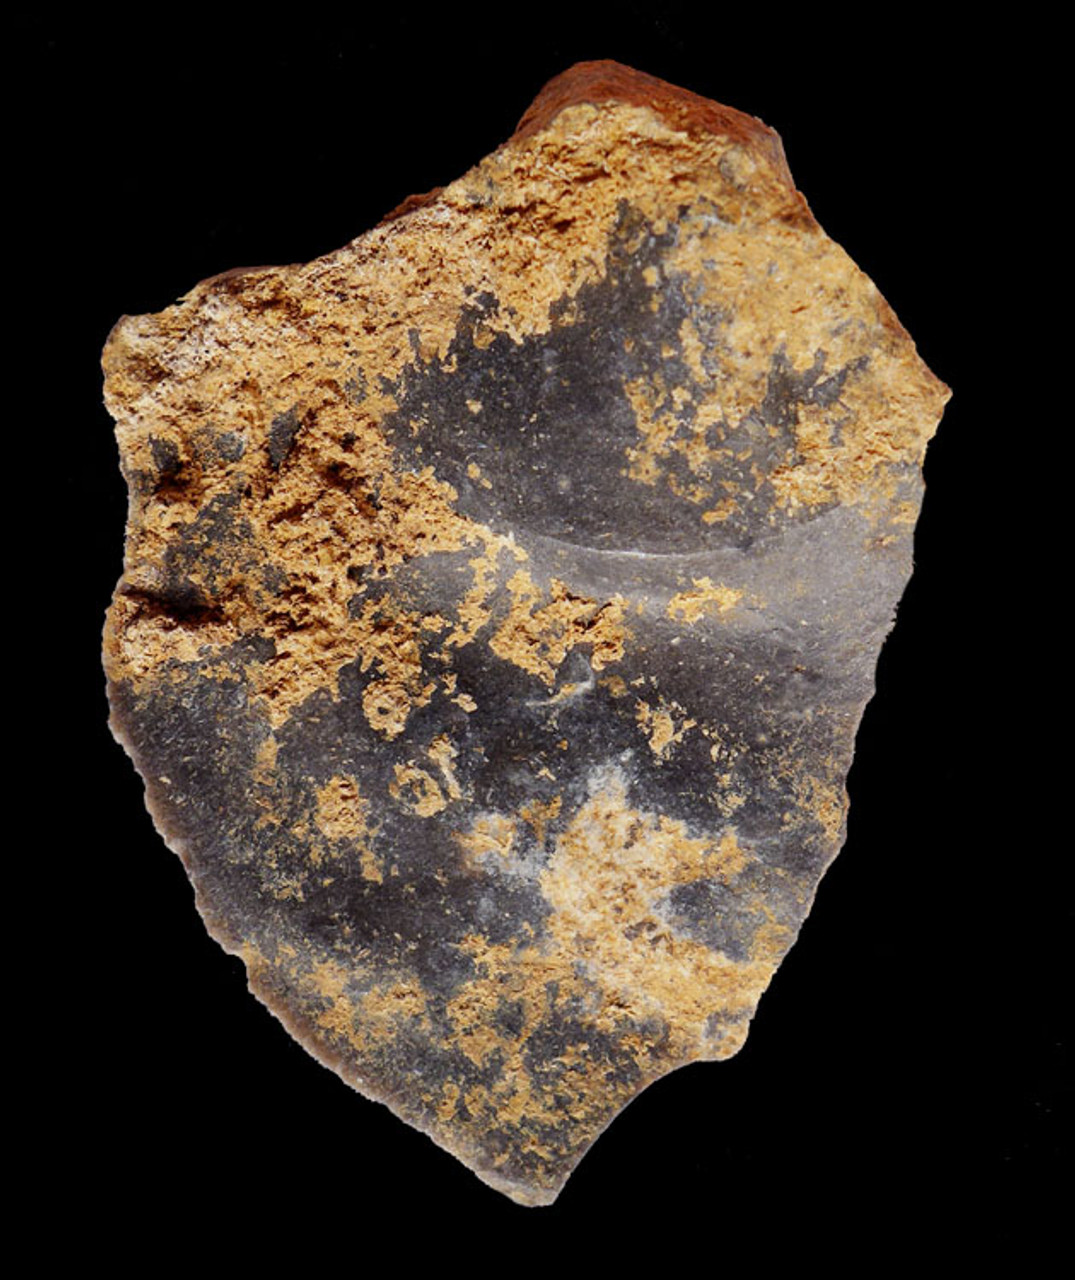 M368 - SUPERB LARGE MOUSTERIAN NEANDERTHAL CONVEX SIDE SCRAPER TOOL FROM FRANCE